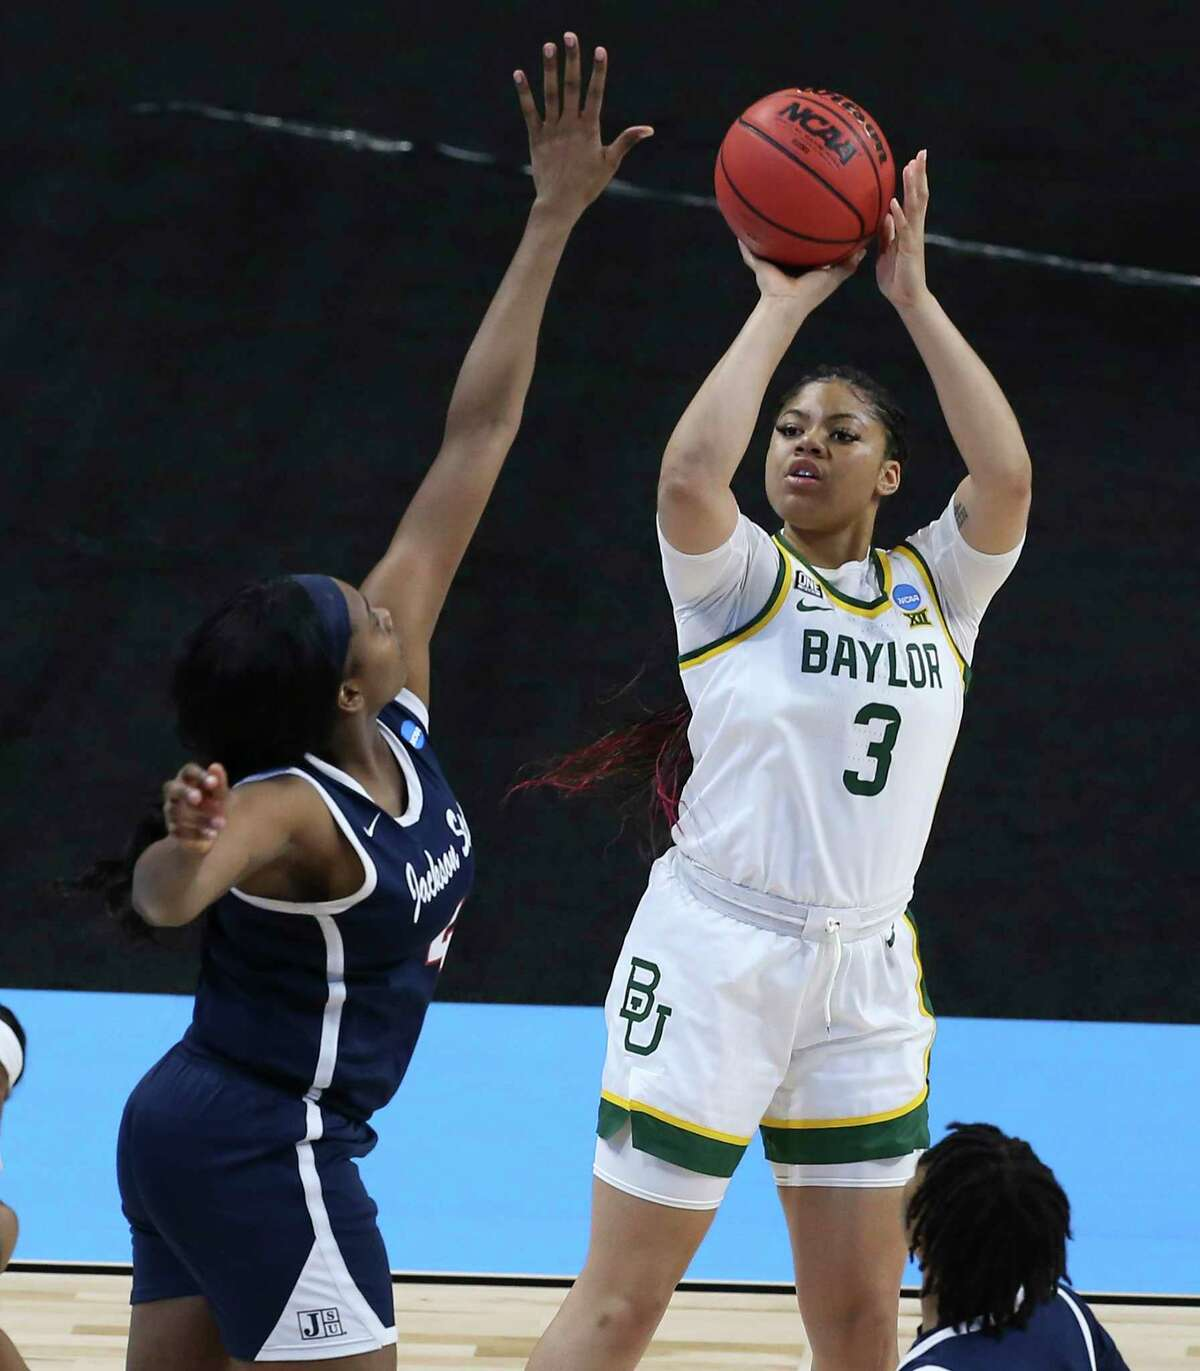 Baylor's Trinity Oliver (03) shoots over Jackson State's Ameshya Williams (04) in the first round of the 2021 NCAA Div. I Women's Basketball Championship at the Alamodome on Sunday, Mar. 21, 2021. Baylor defeated Jackson State, 101-52 to move onto the second round.